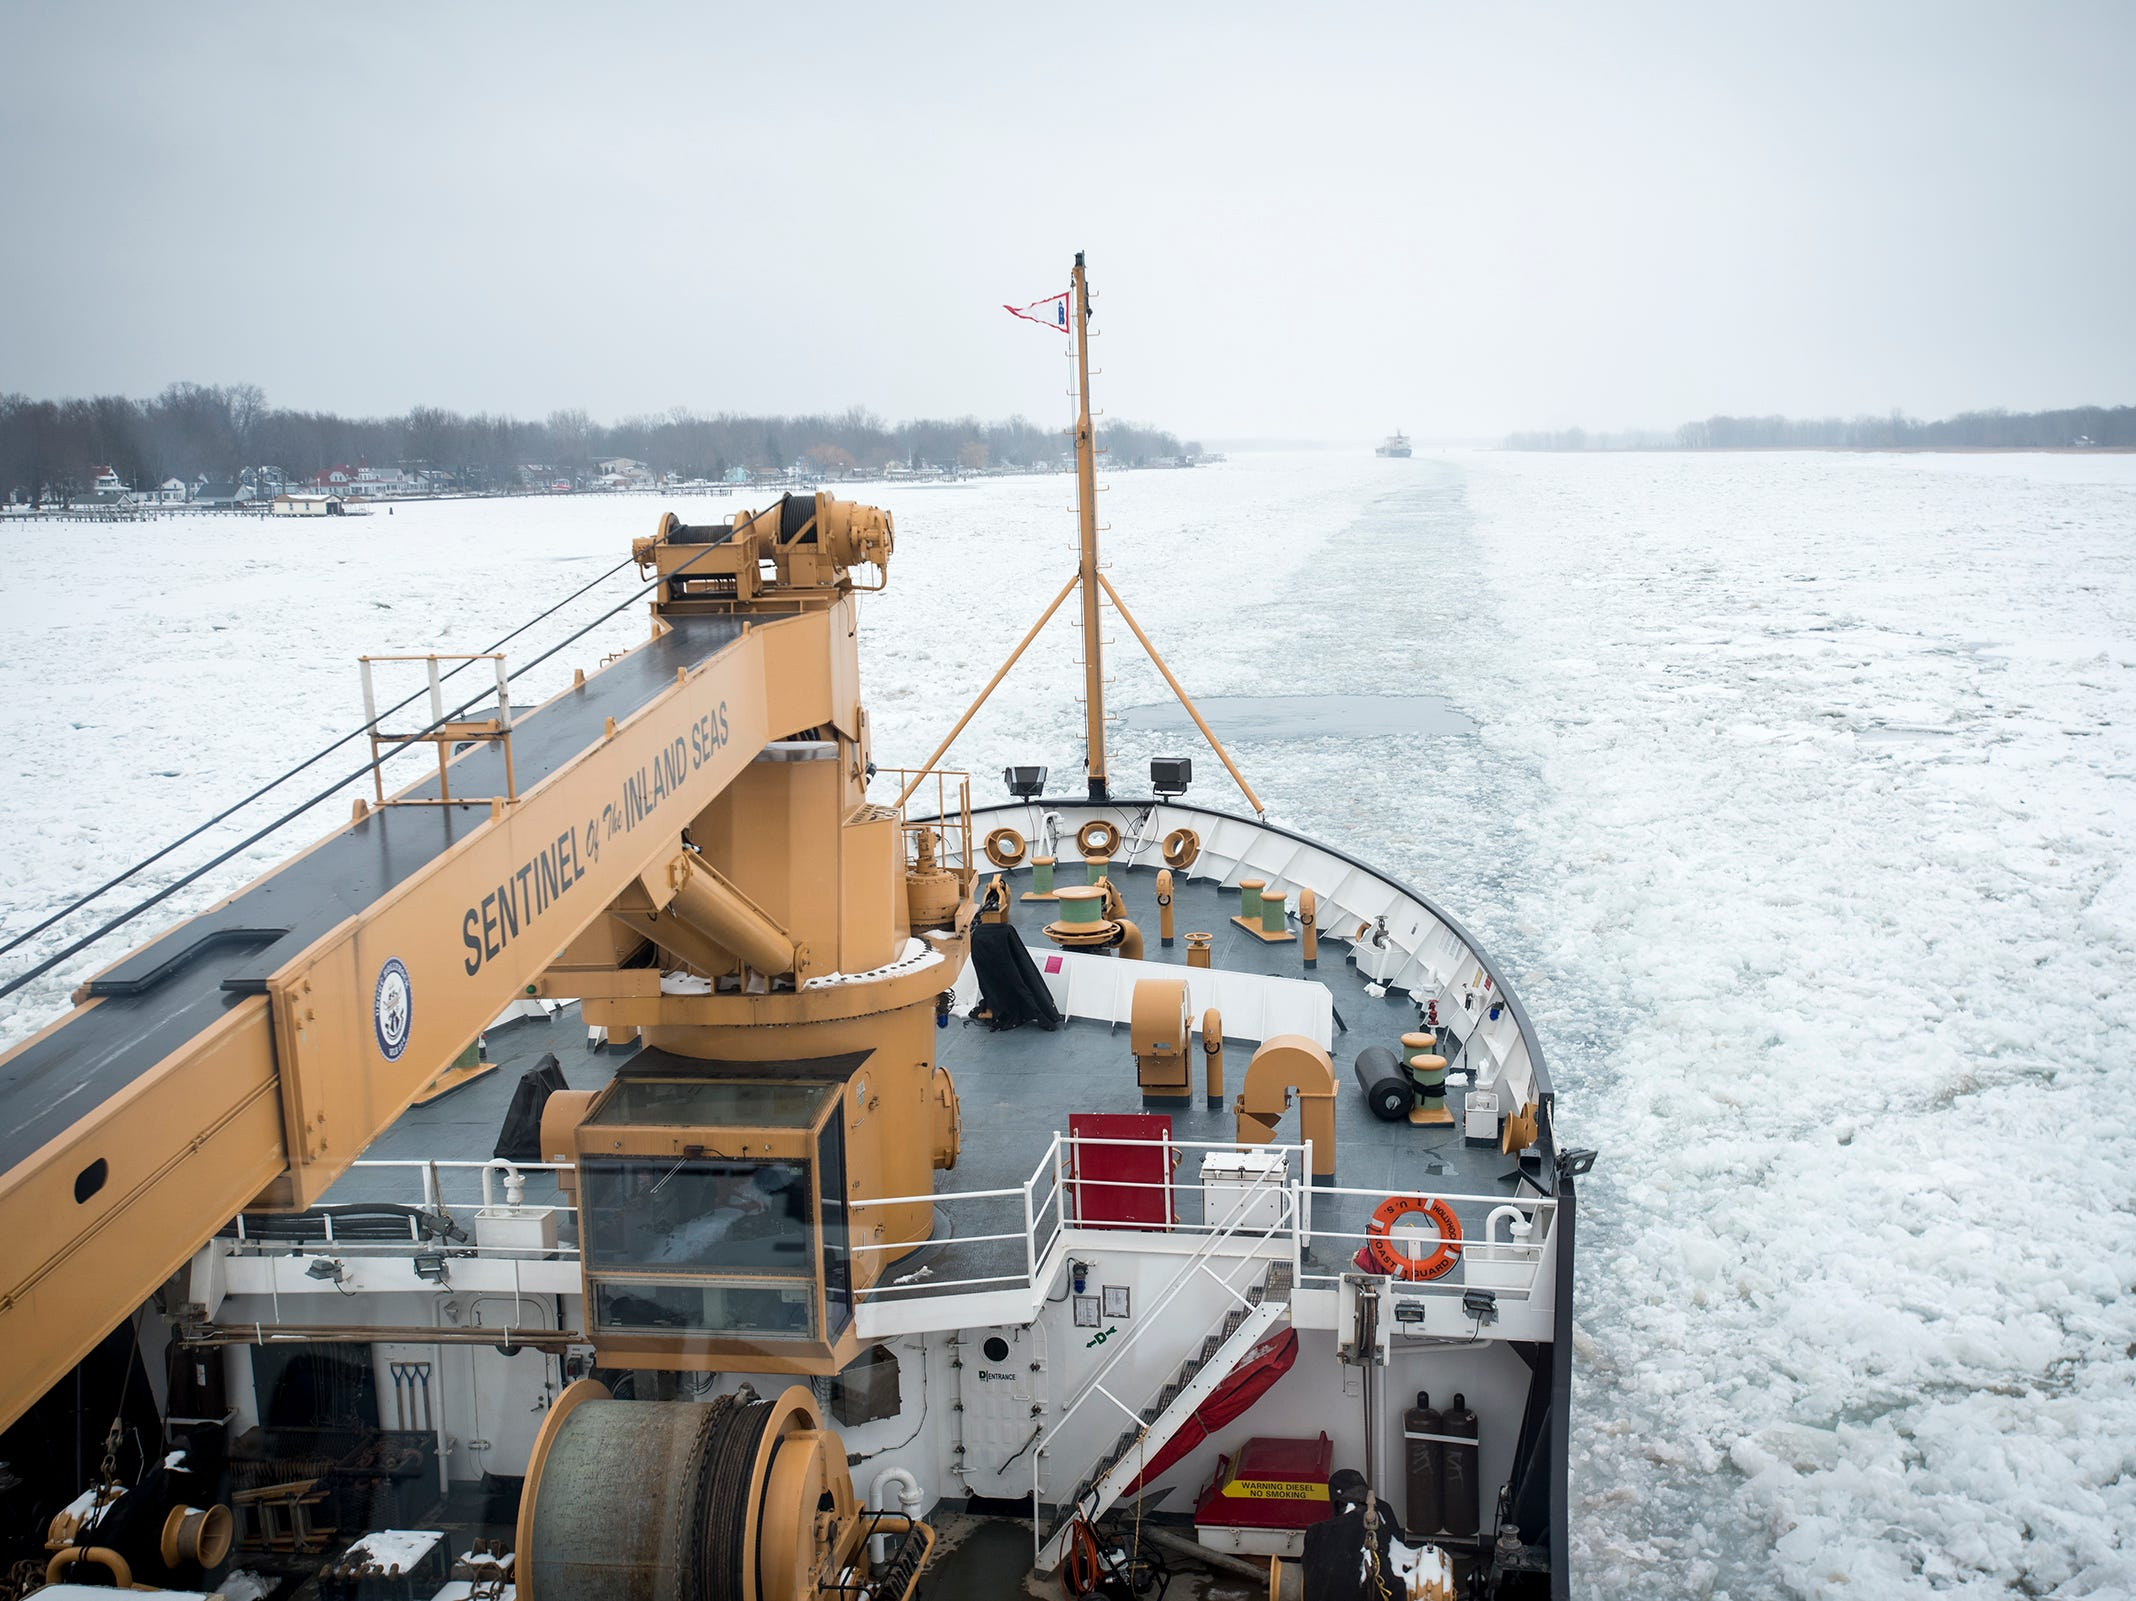 The USCGC Hollyhock follows the Algonova north on the St. Clair River Wednesday, Feb. 20, 2019, near Algonac. The Hollyhock, together with the USCGC Bristol Bay, escorted the nearly 430-foot freighter through an ice jam that had formed near Algonac.